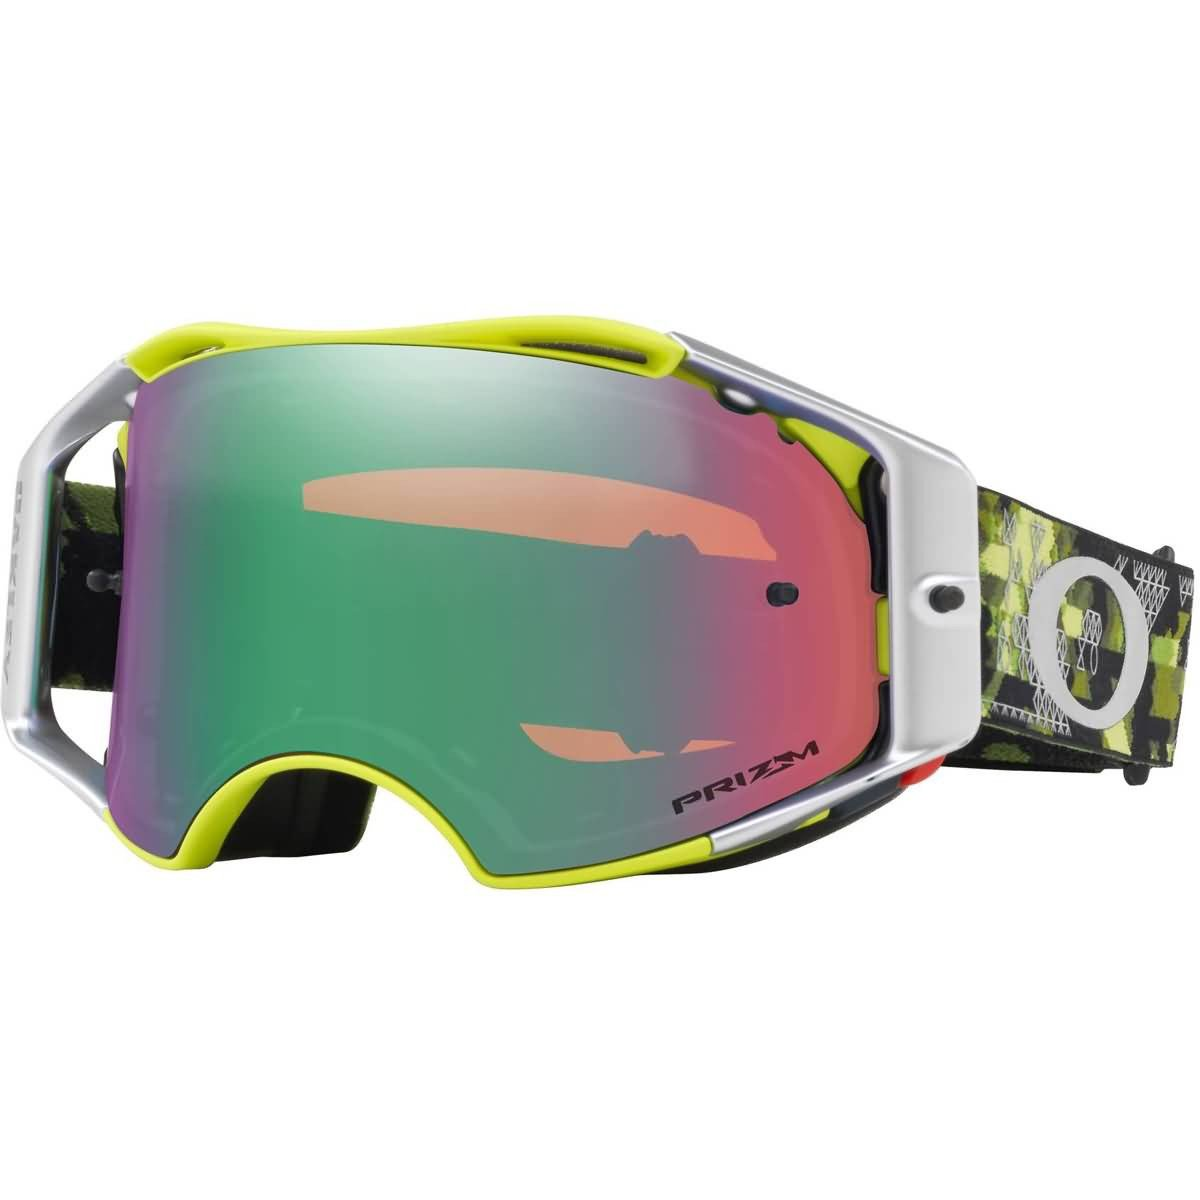 Oakley Airbrake MX Tomac SIG Mil.DigiGrn with PrizmMXJade unisex-adult Goggles (Green, Medium), 1 Pack